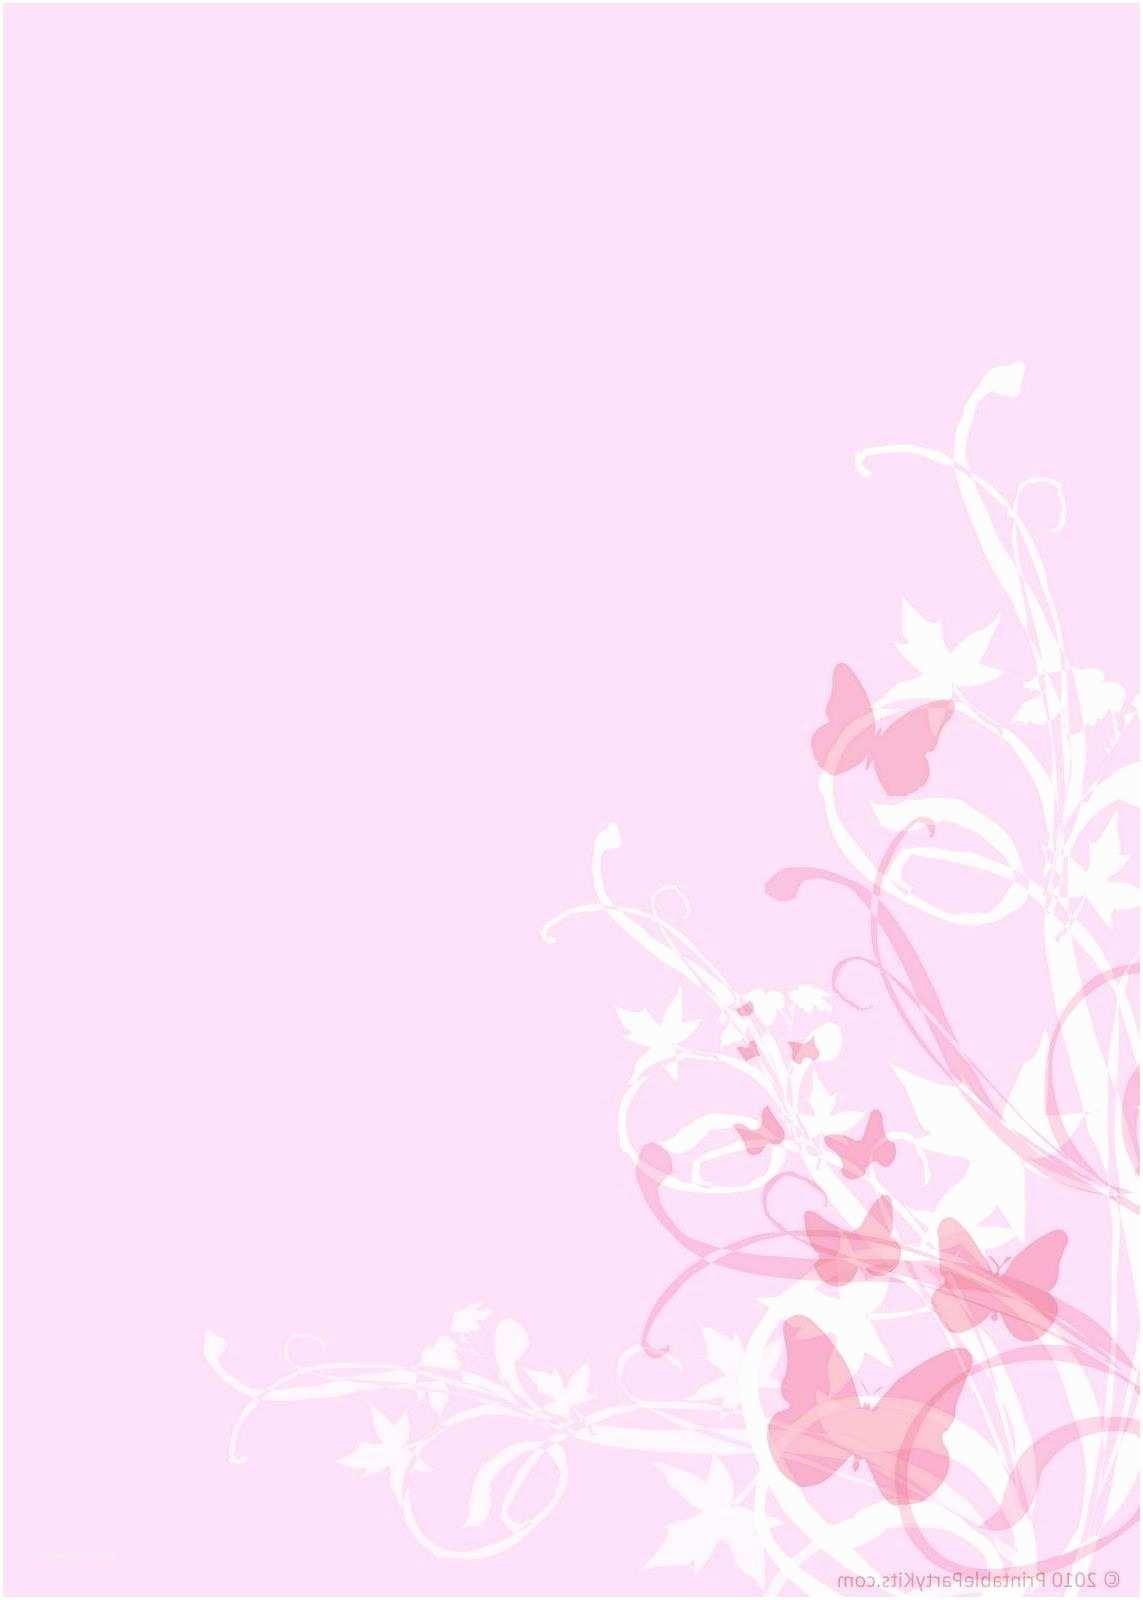 Background Images for Wedding Invitation Cards Invitation Background Designs Pink